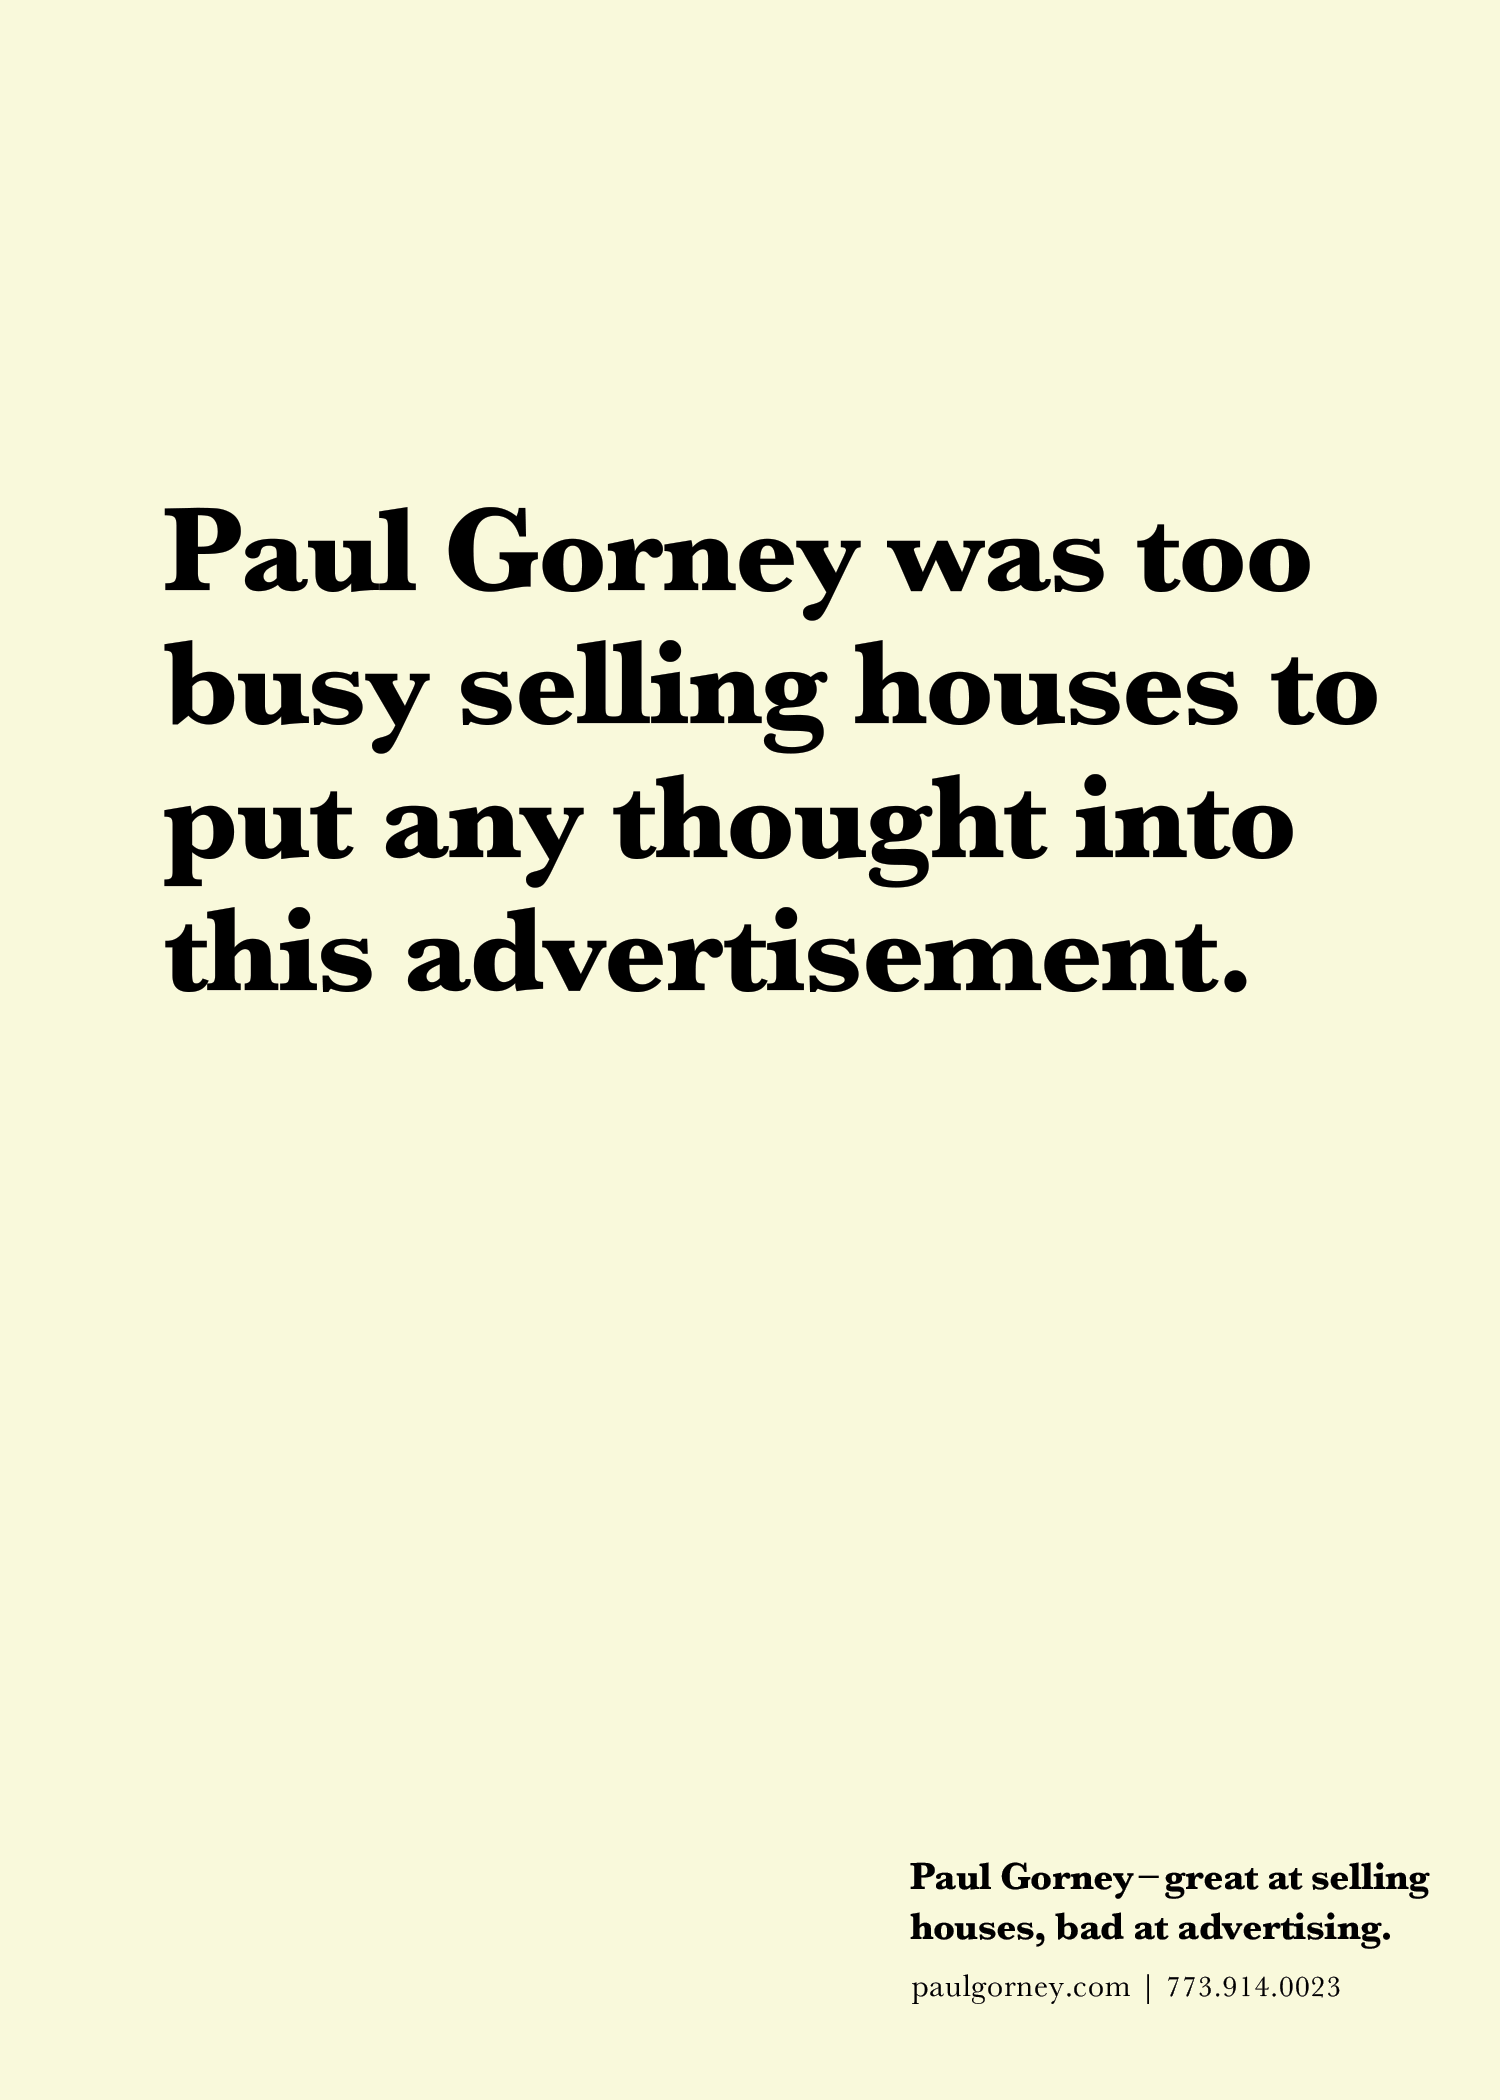 Gorney_Text.png